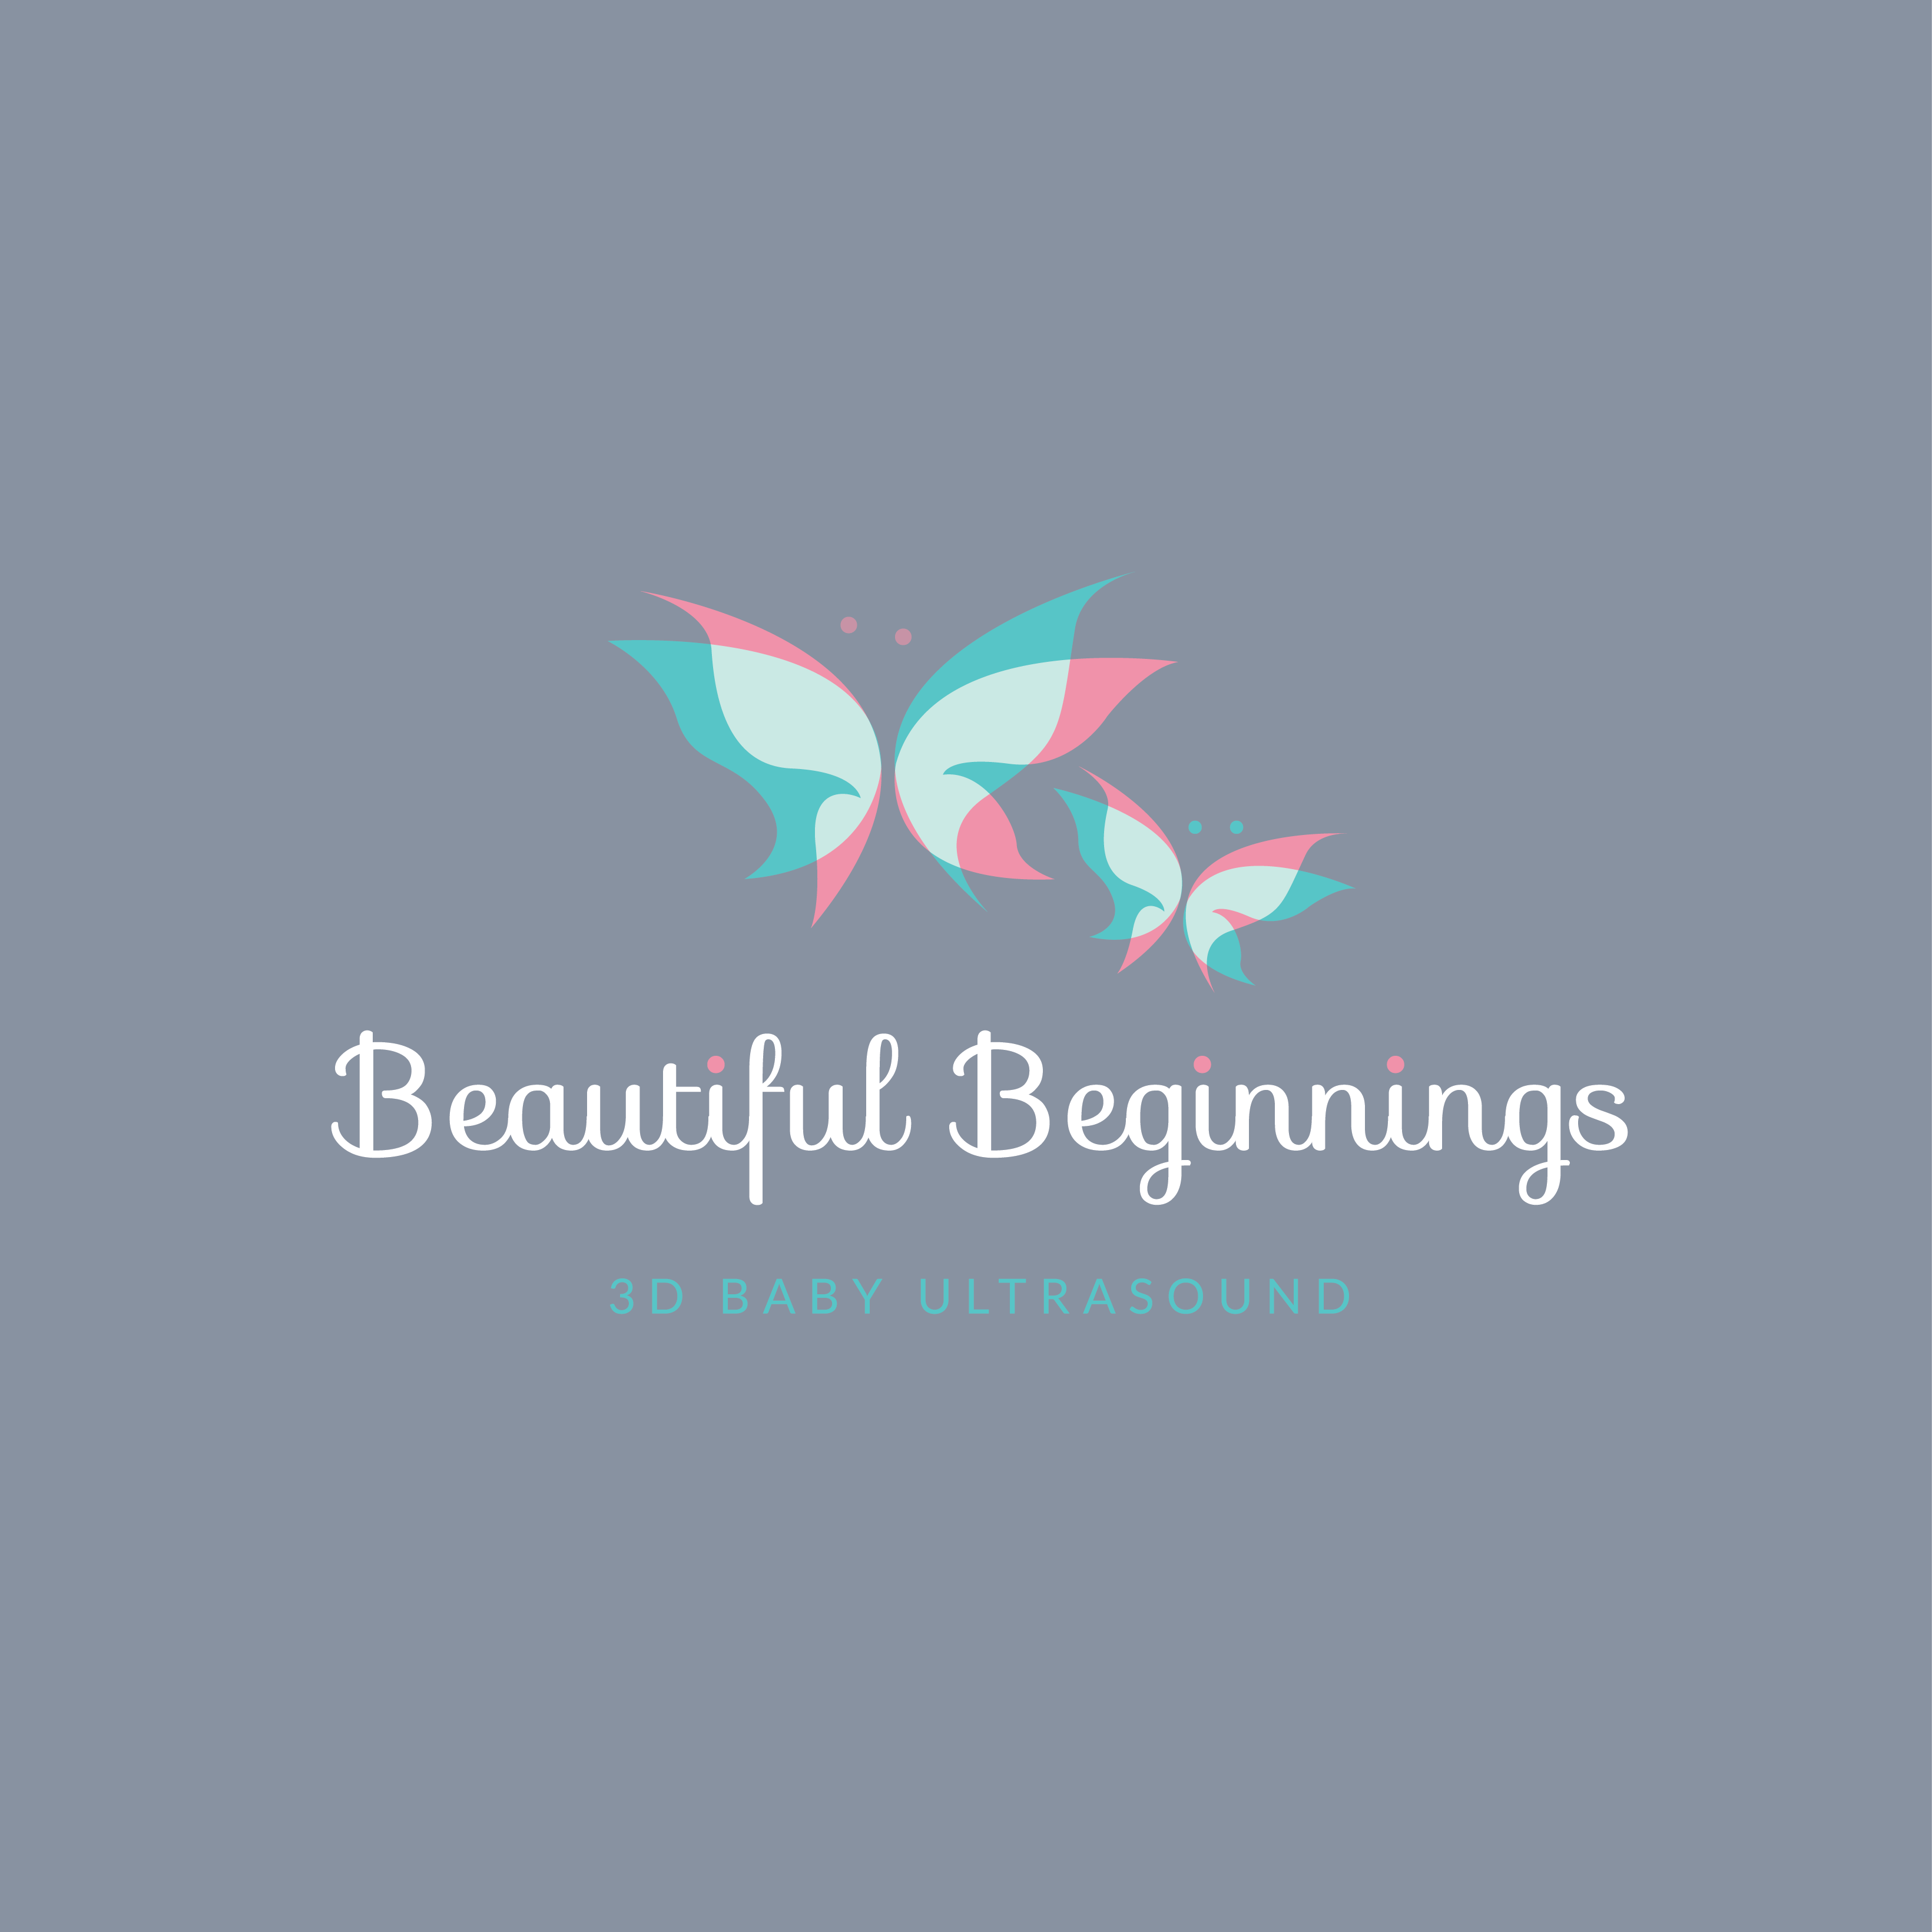 Welcome to the Beautiful Beginnings Blog